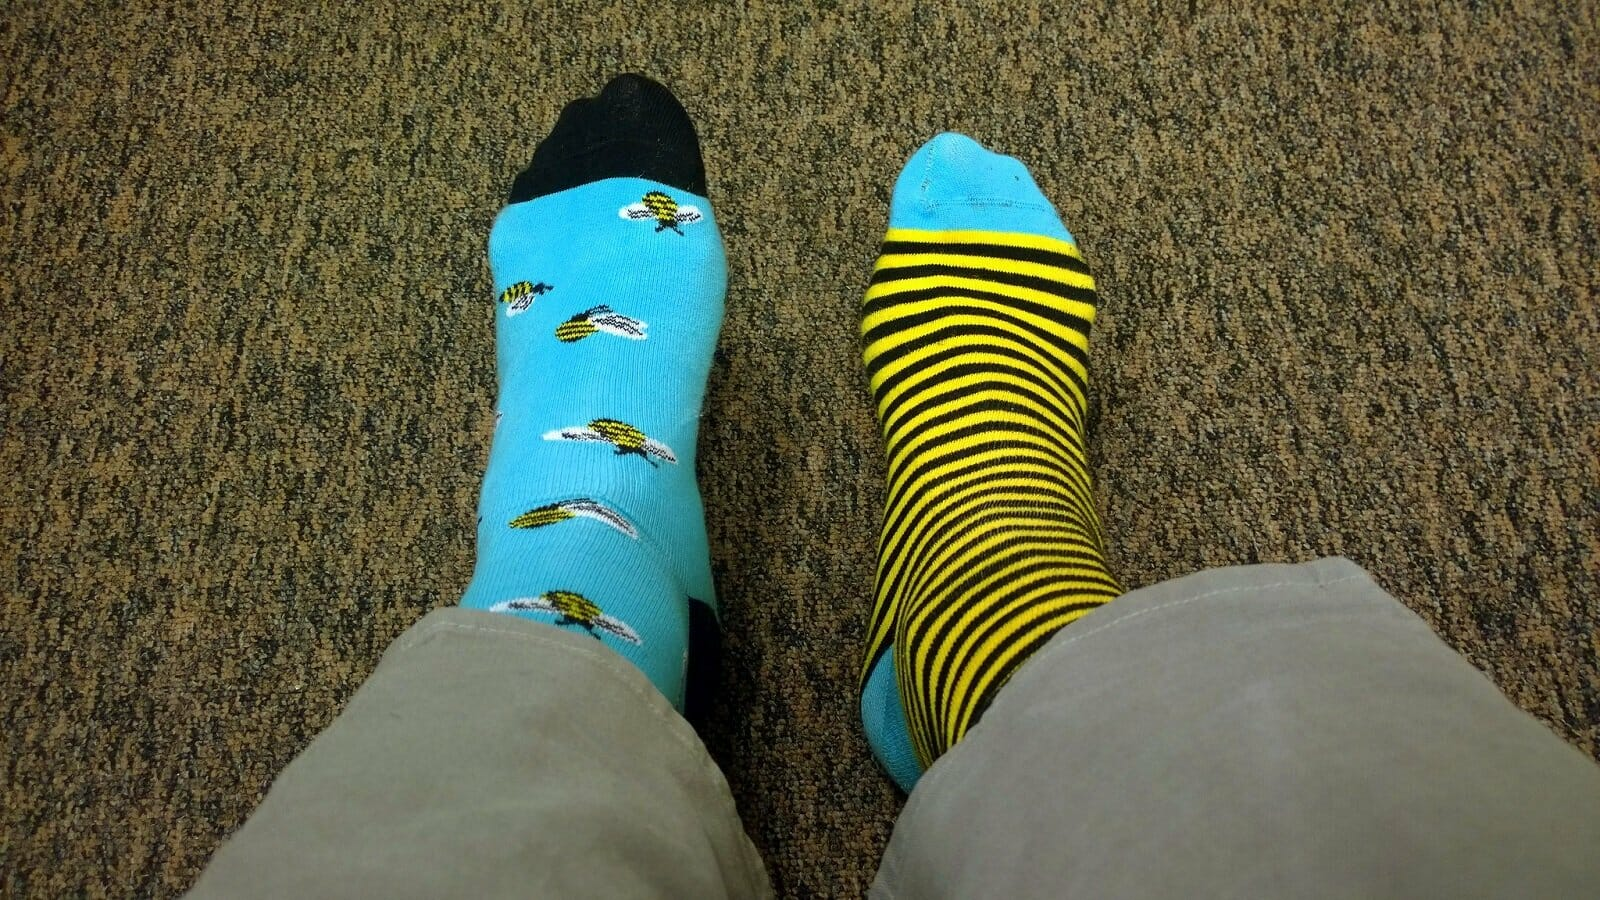 Funny travel stories - a person looking down at their mismatched socks